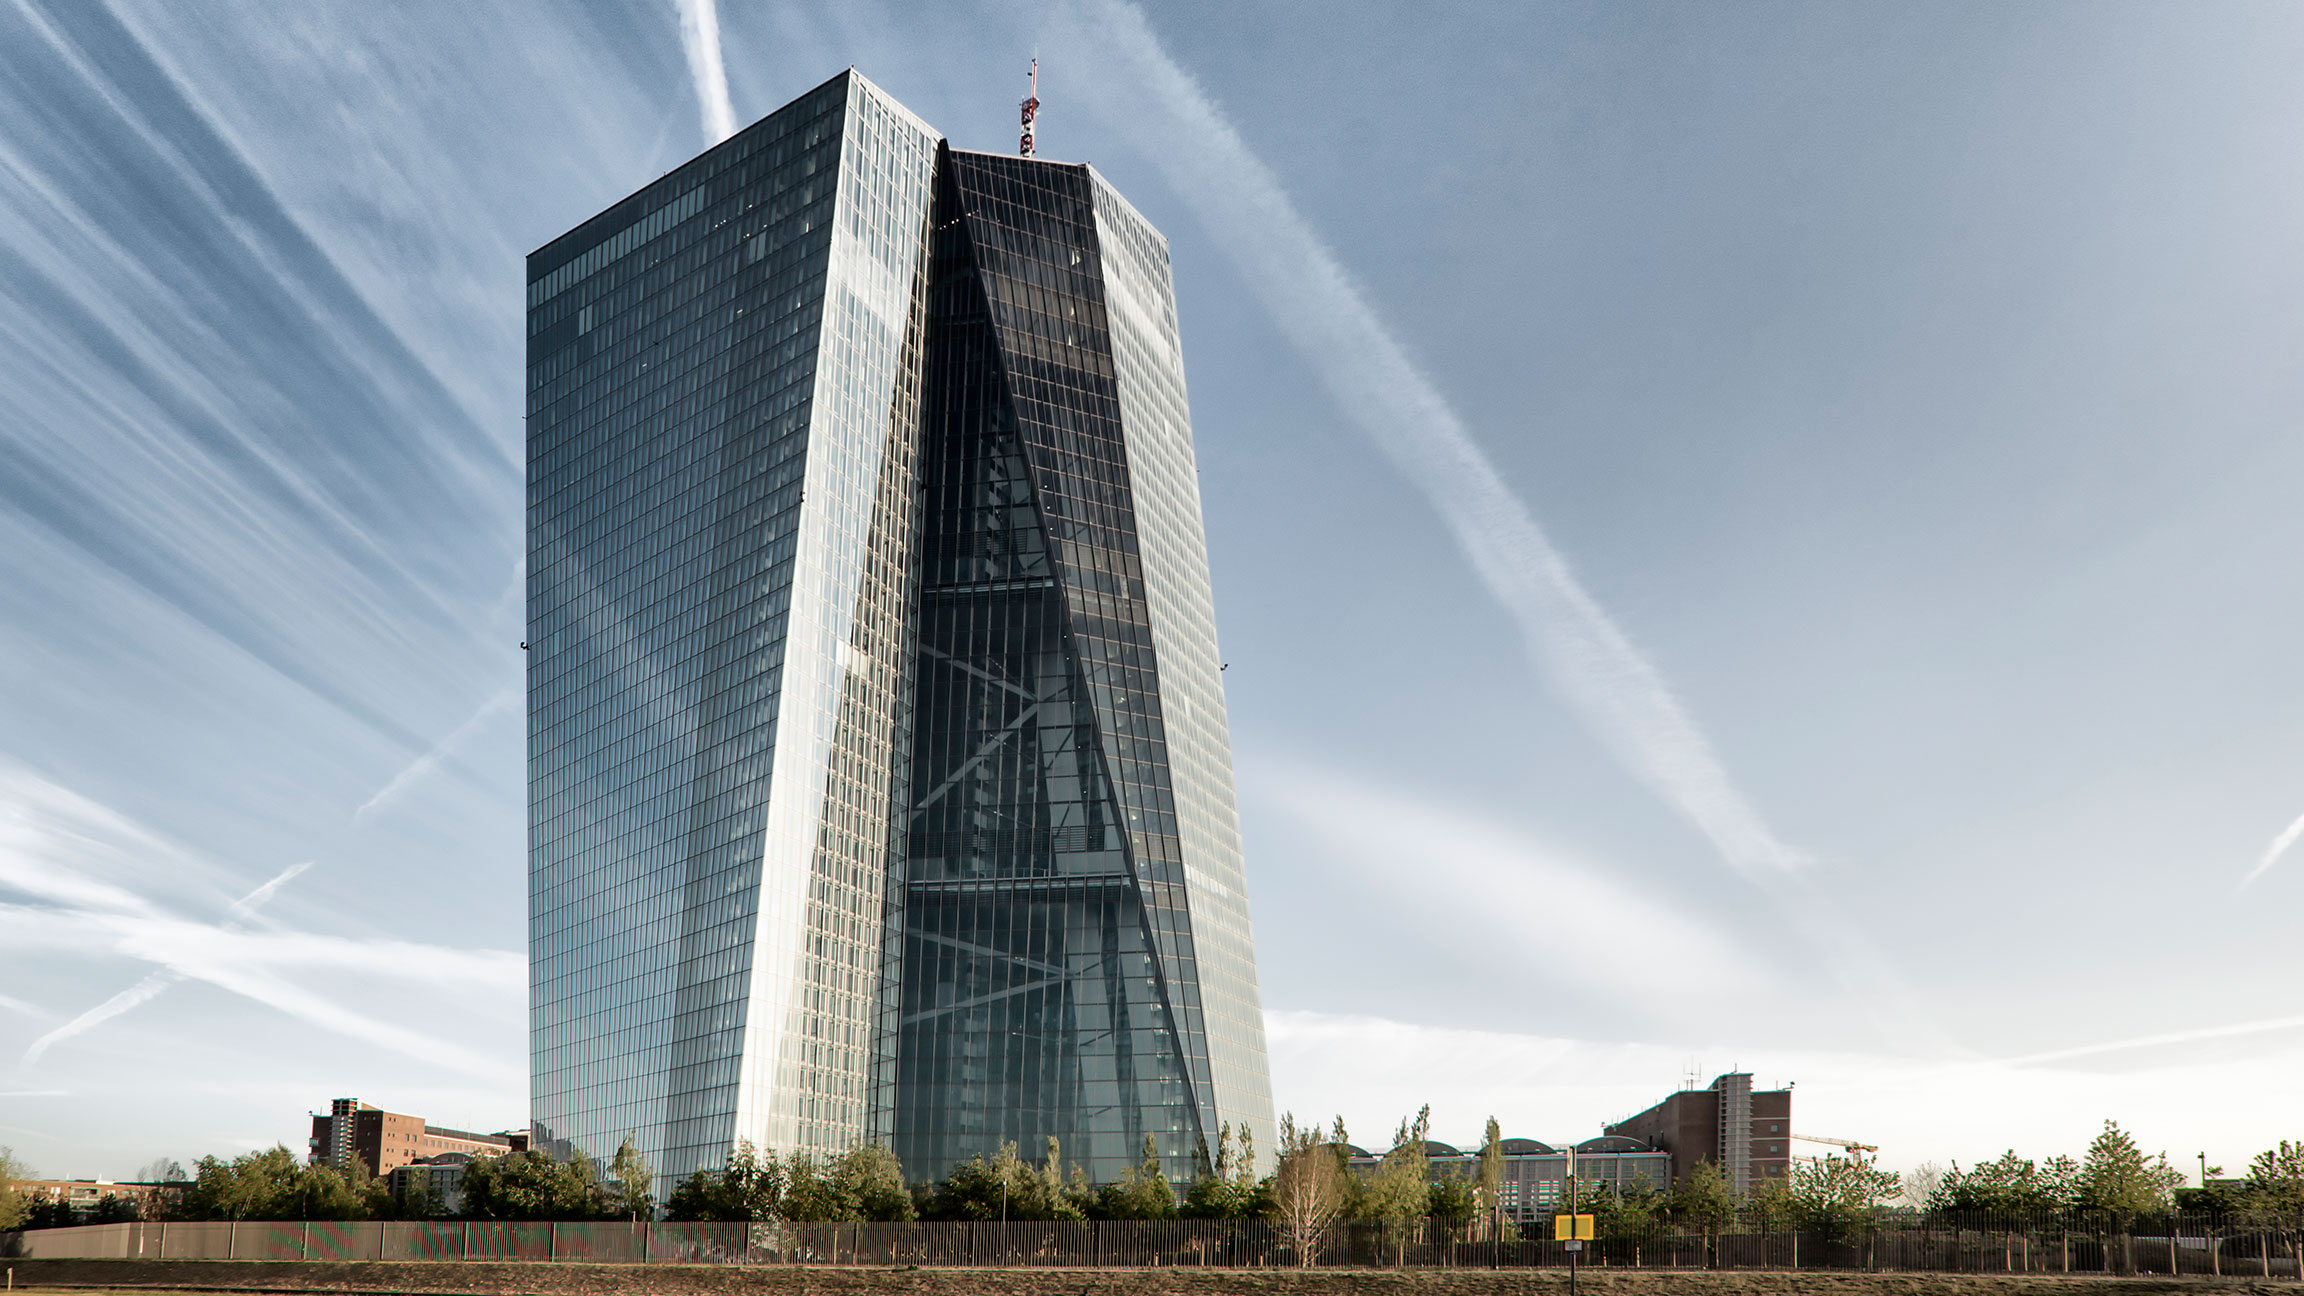 Given economic uncertainty, ECB may stay accommodative